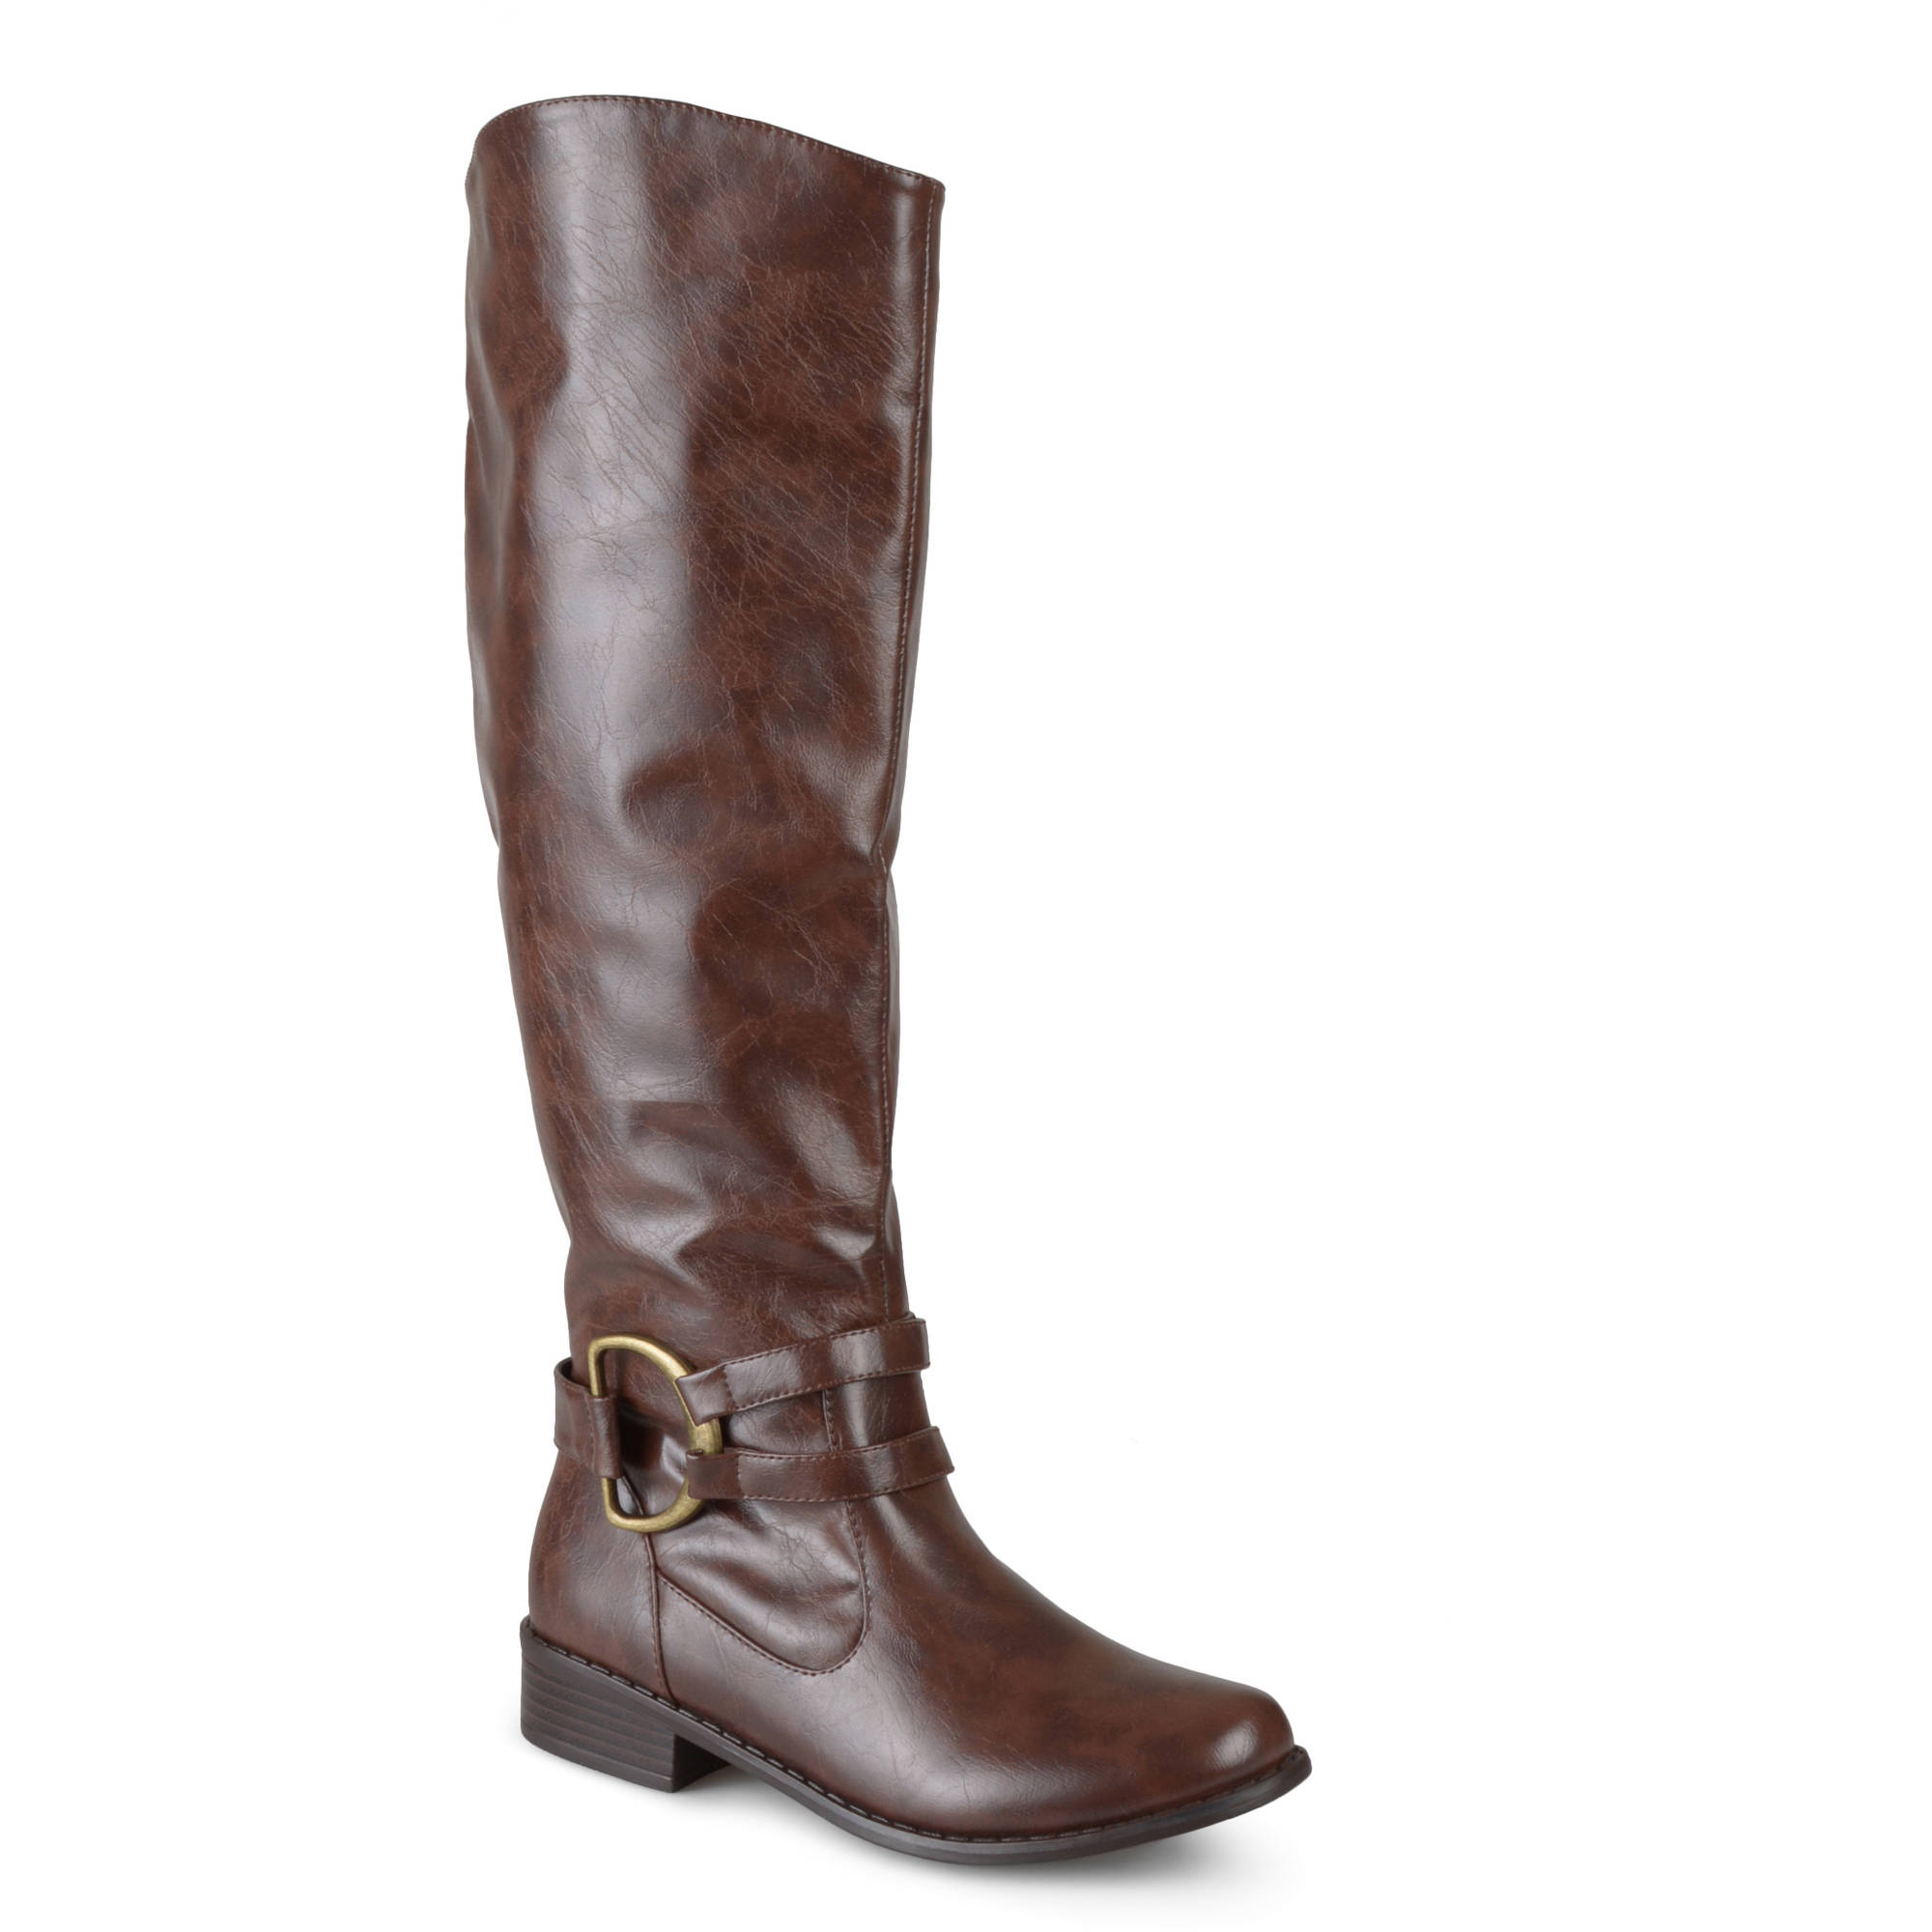 Brinley Co. Women's Knee-High Riding Boots by Brinley Co.